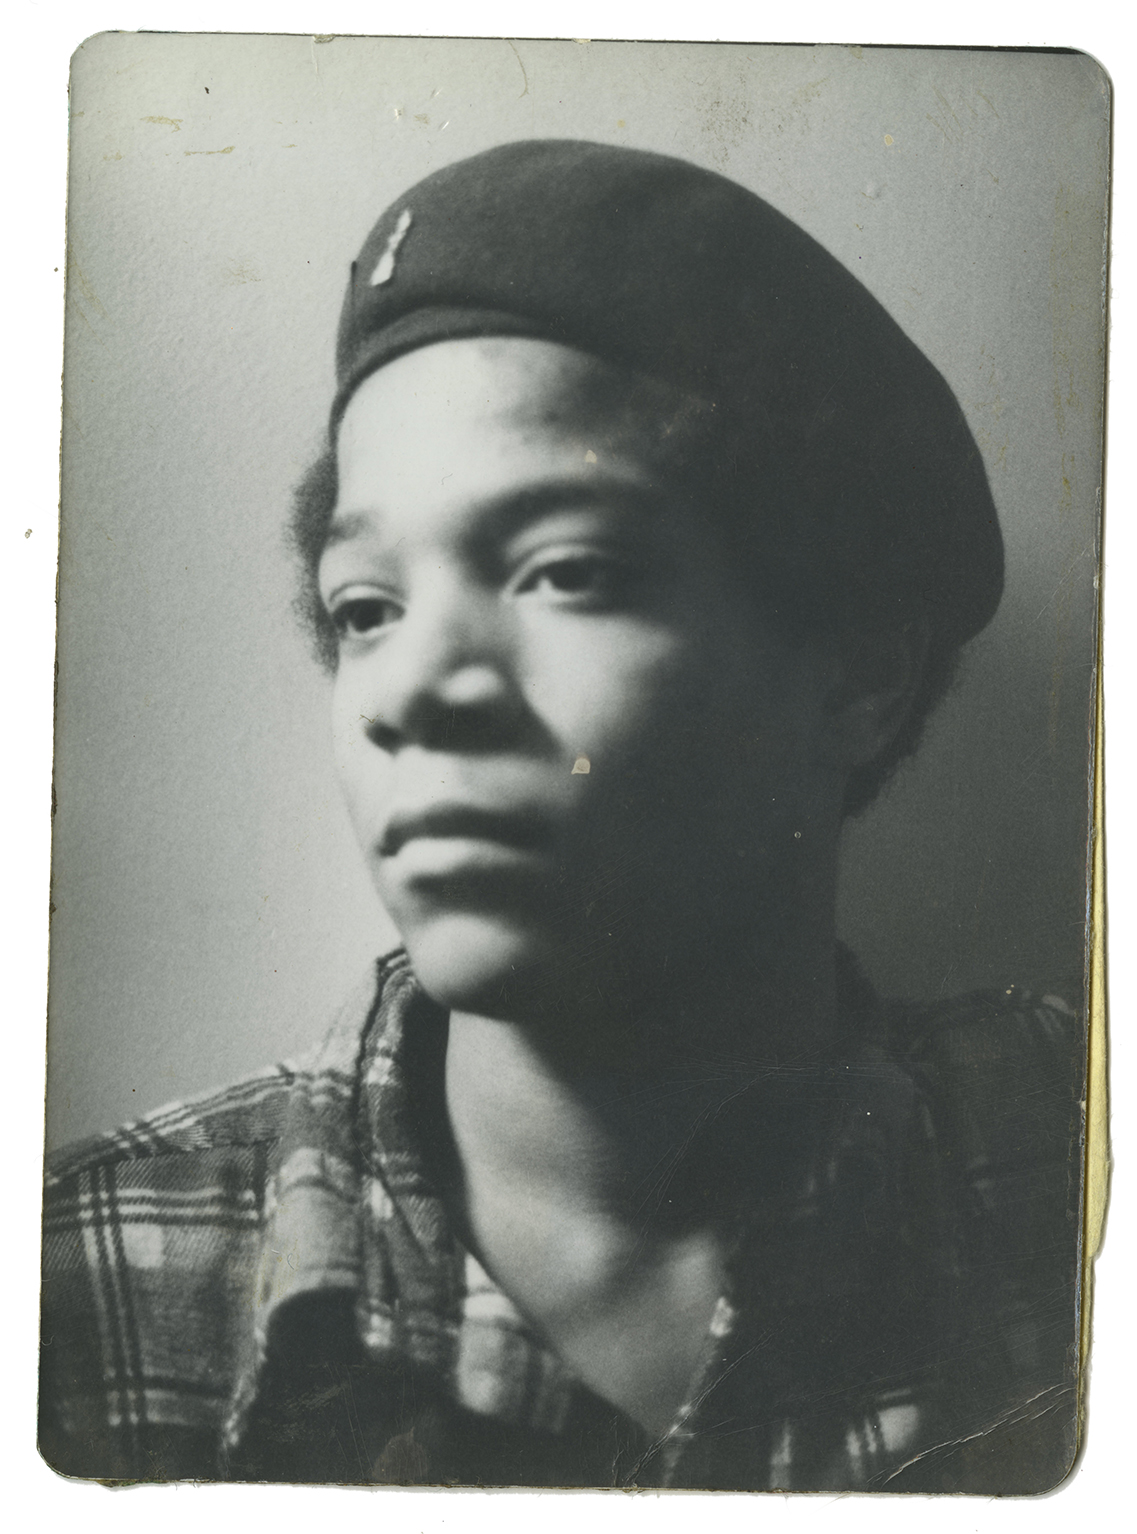 Jean-Michel Basquiat, 1976. Photo by Al Diaz. Courtesy of House of Roulx.